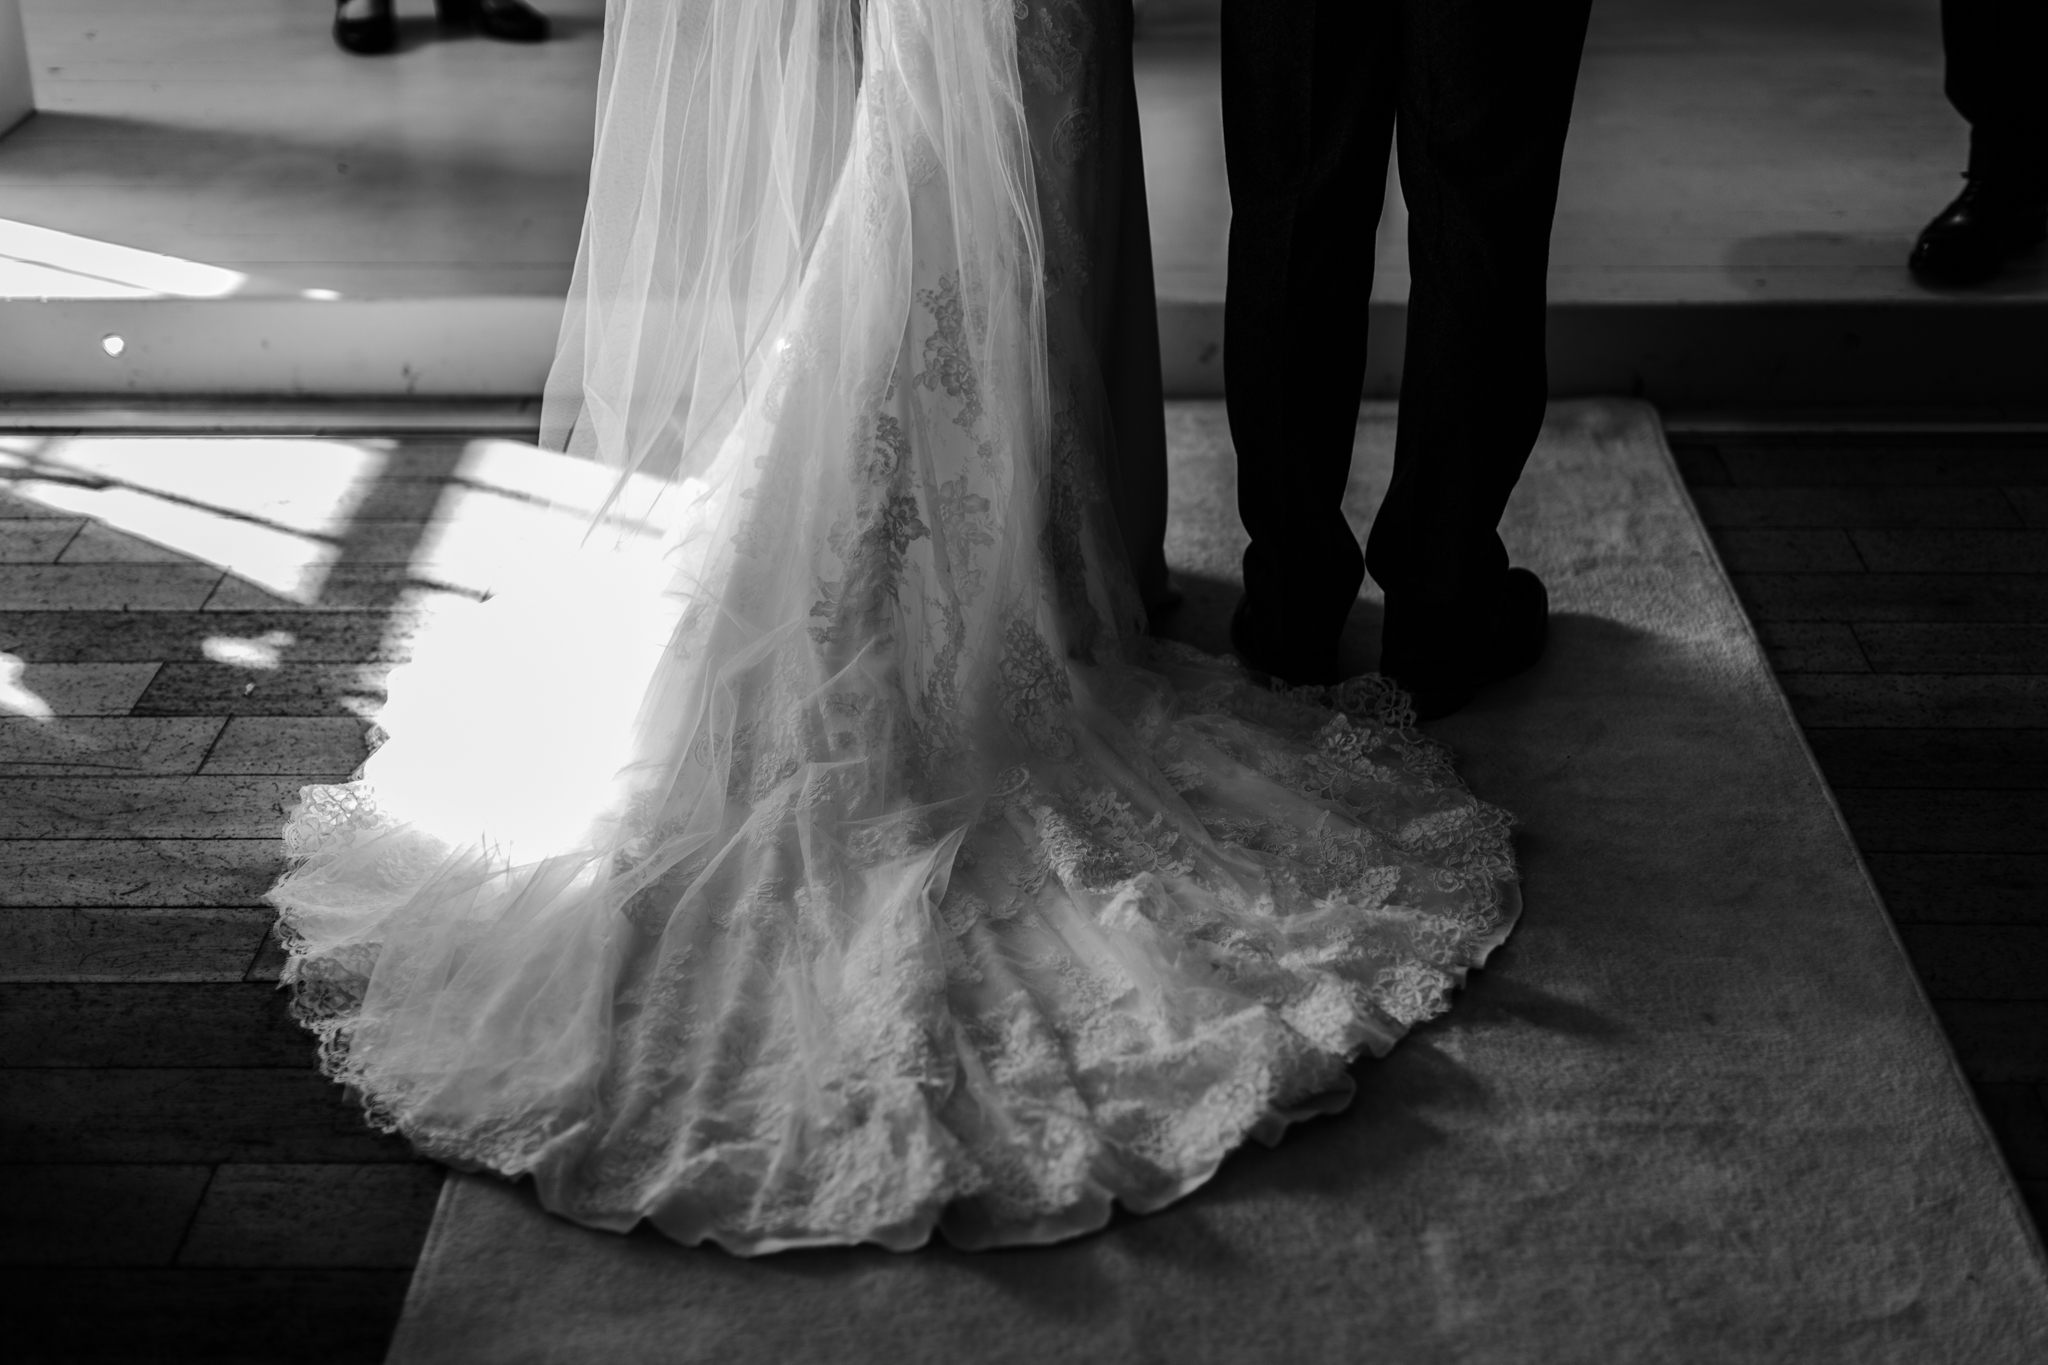 Detail of wedding dress and suit